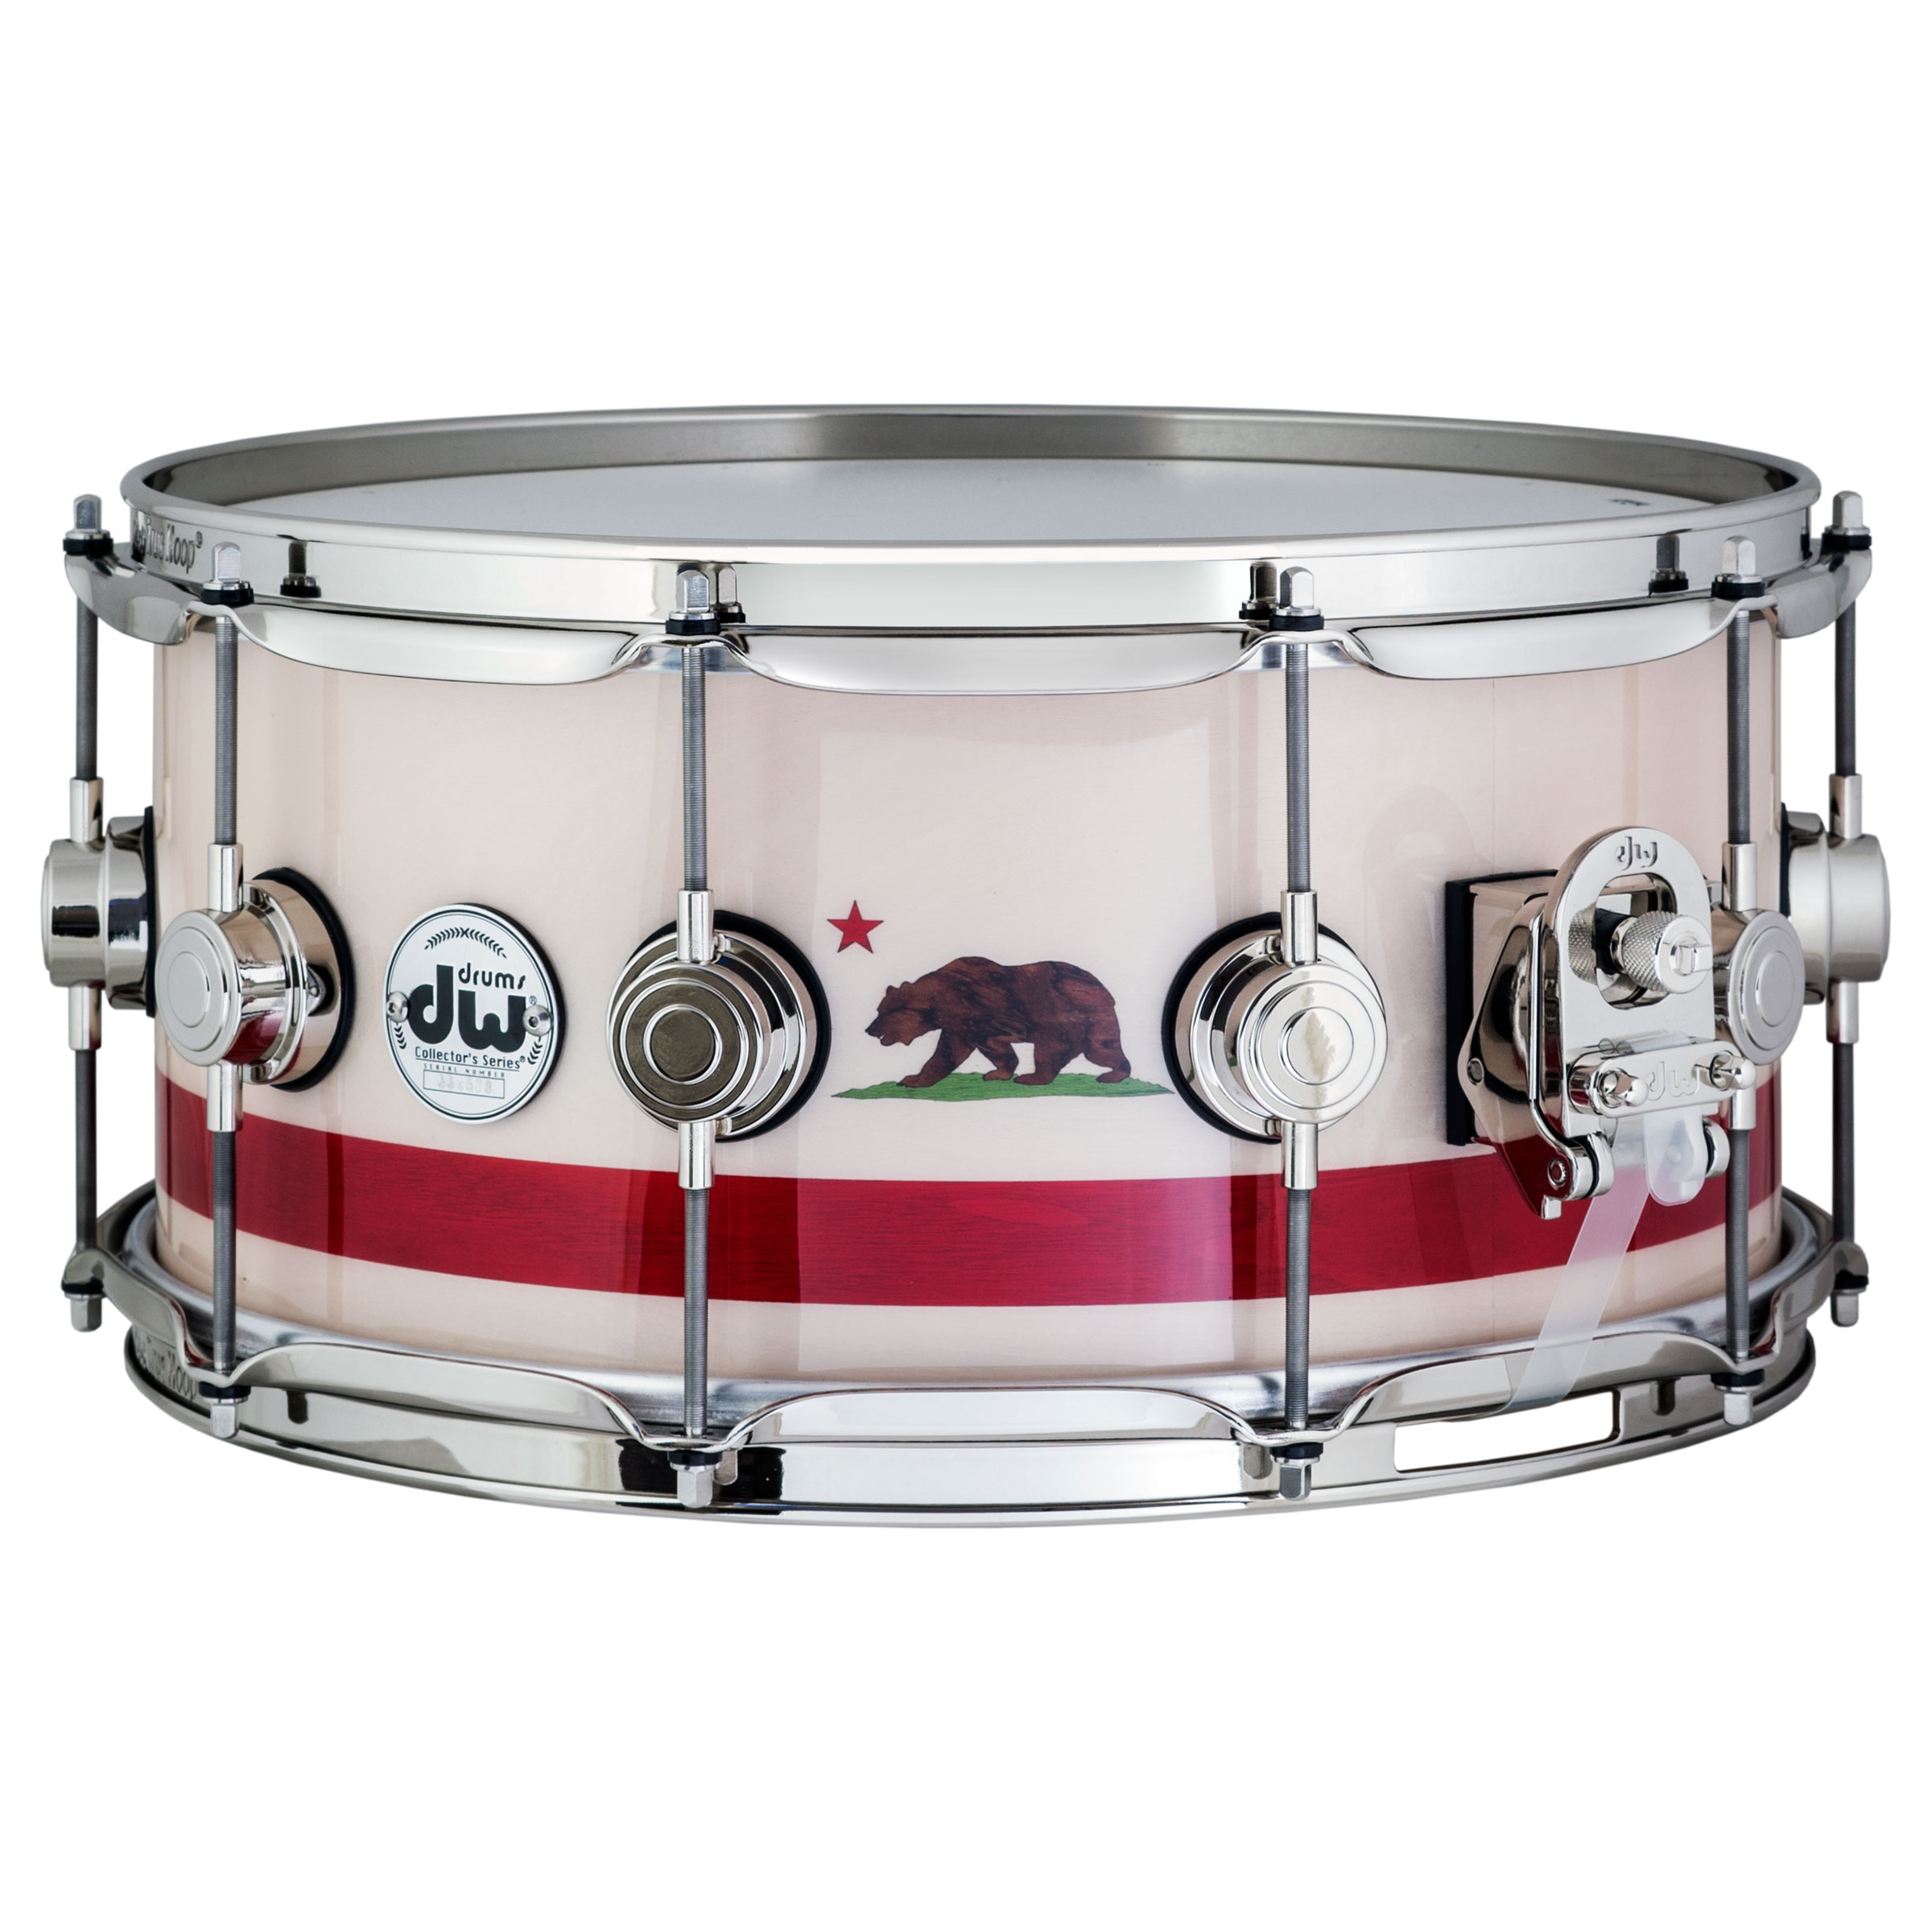 "DW 6.5"" x 14"" Exclusive Maple Snare Drum with California Flag Emblem with White Sycamore Veneer"